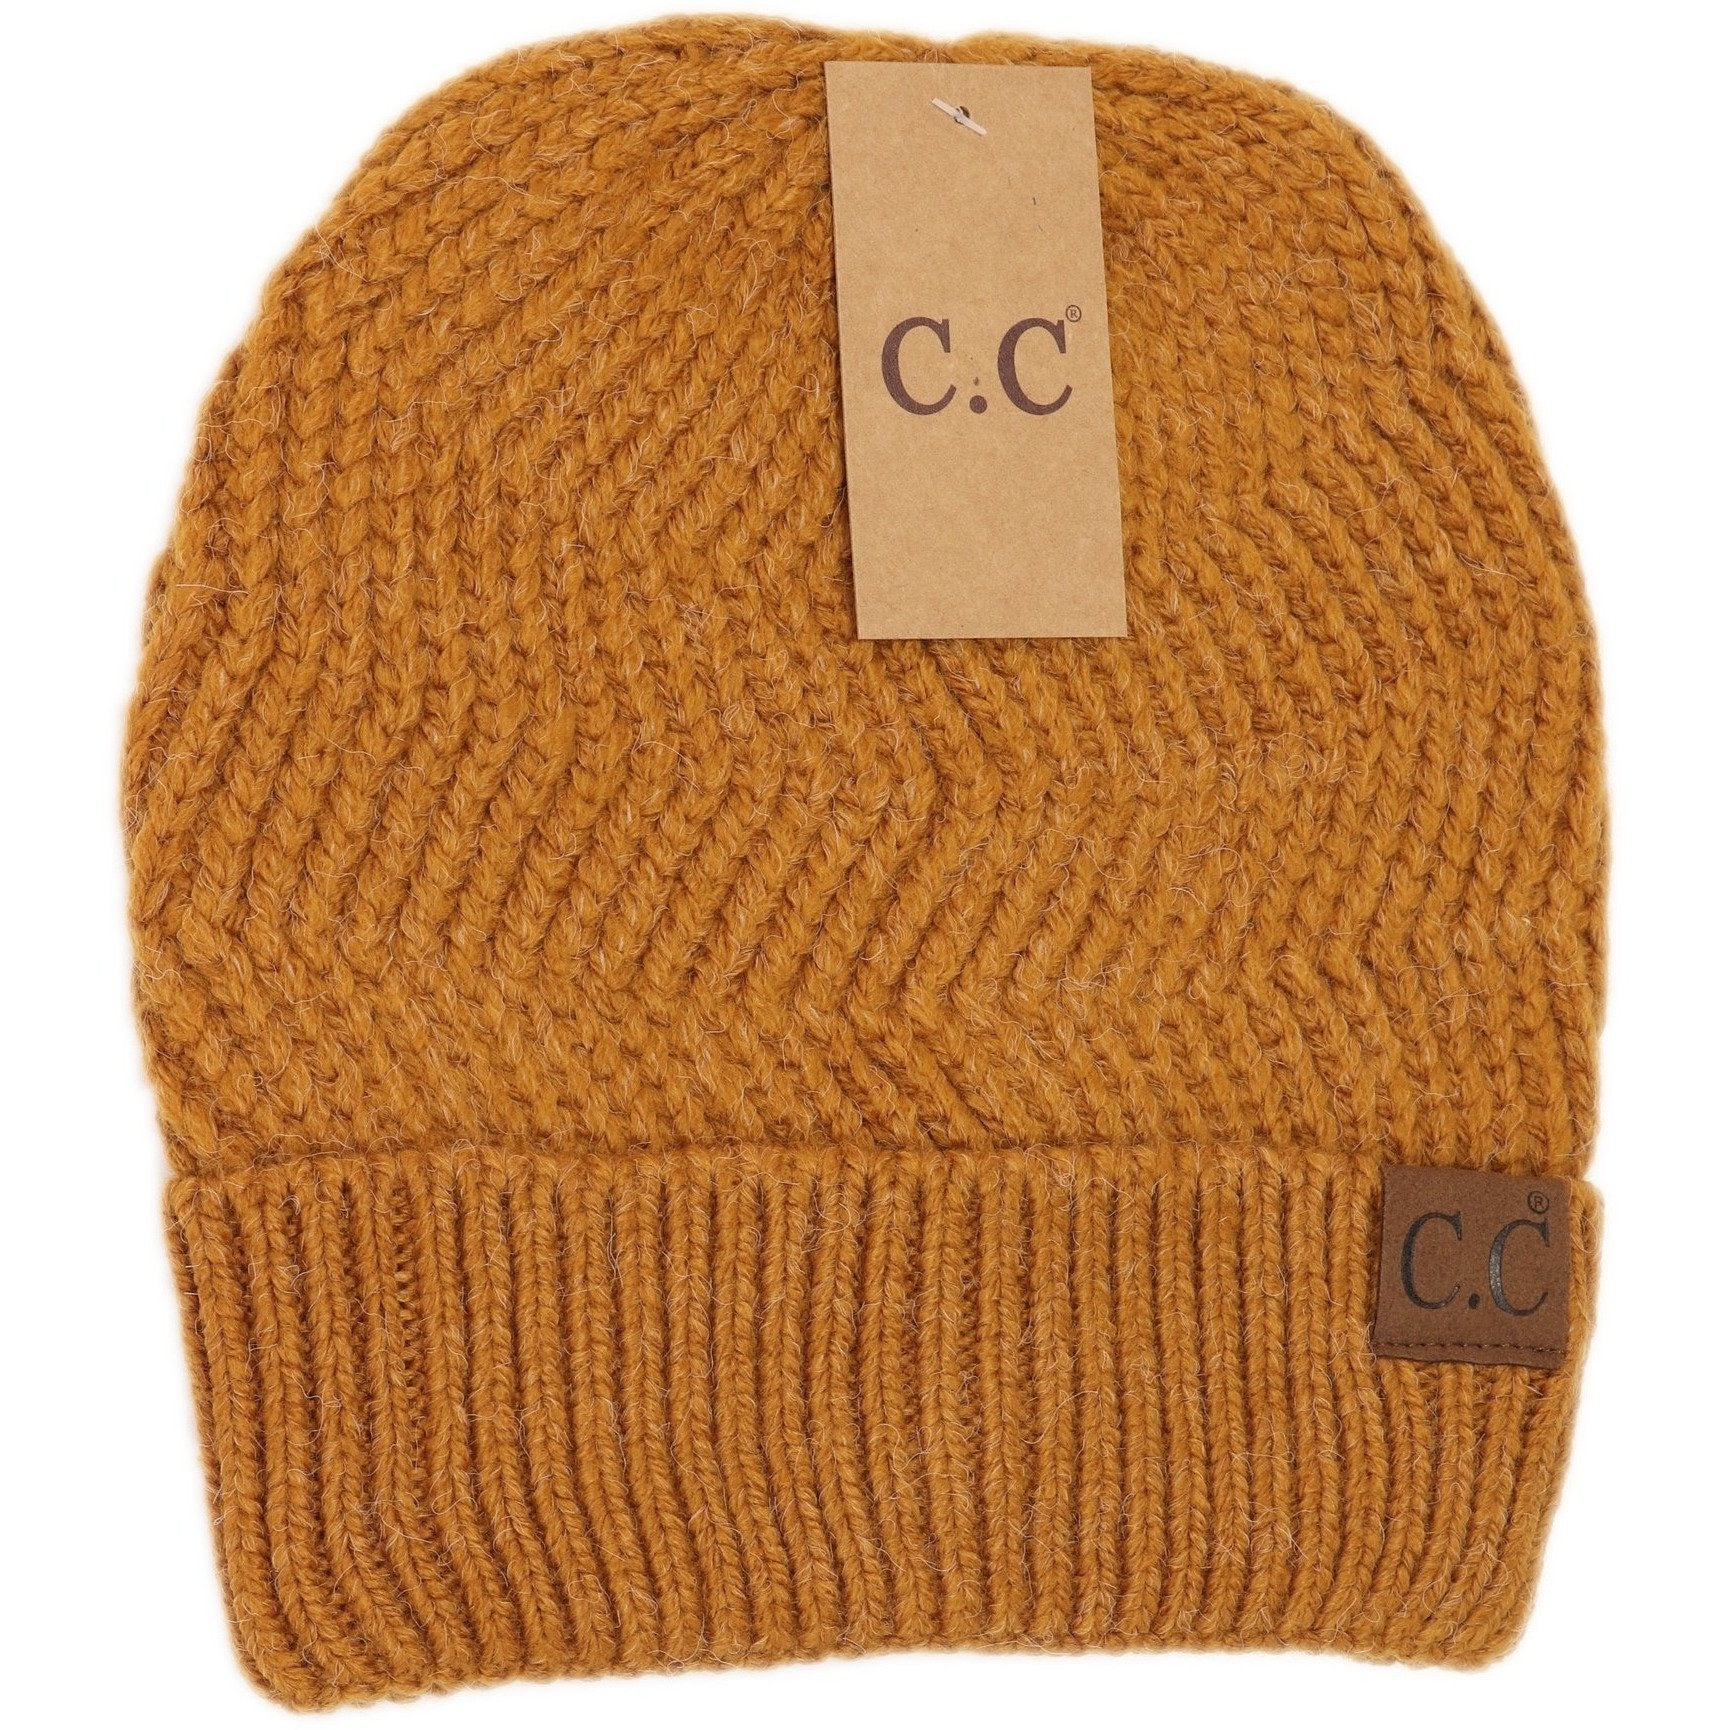 CC Chevron Knit Cuff Beanie-Golden Camel